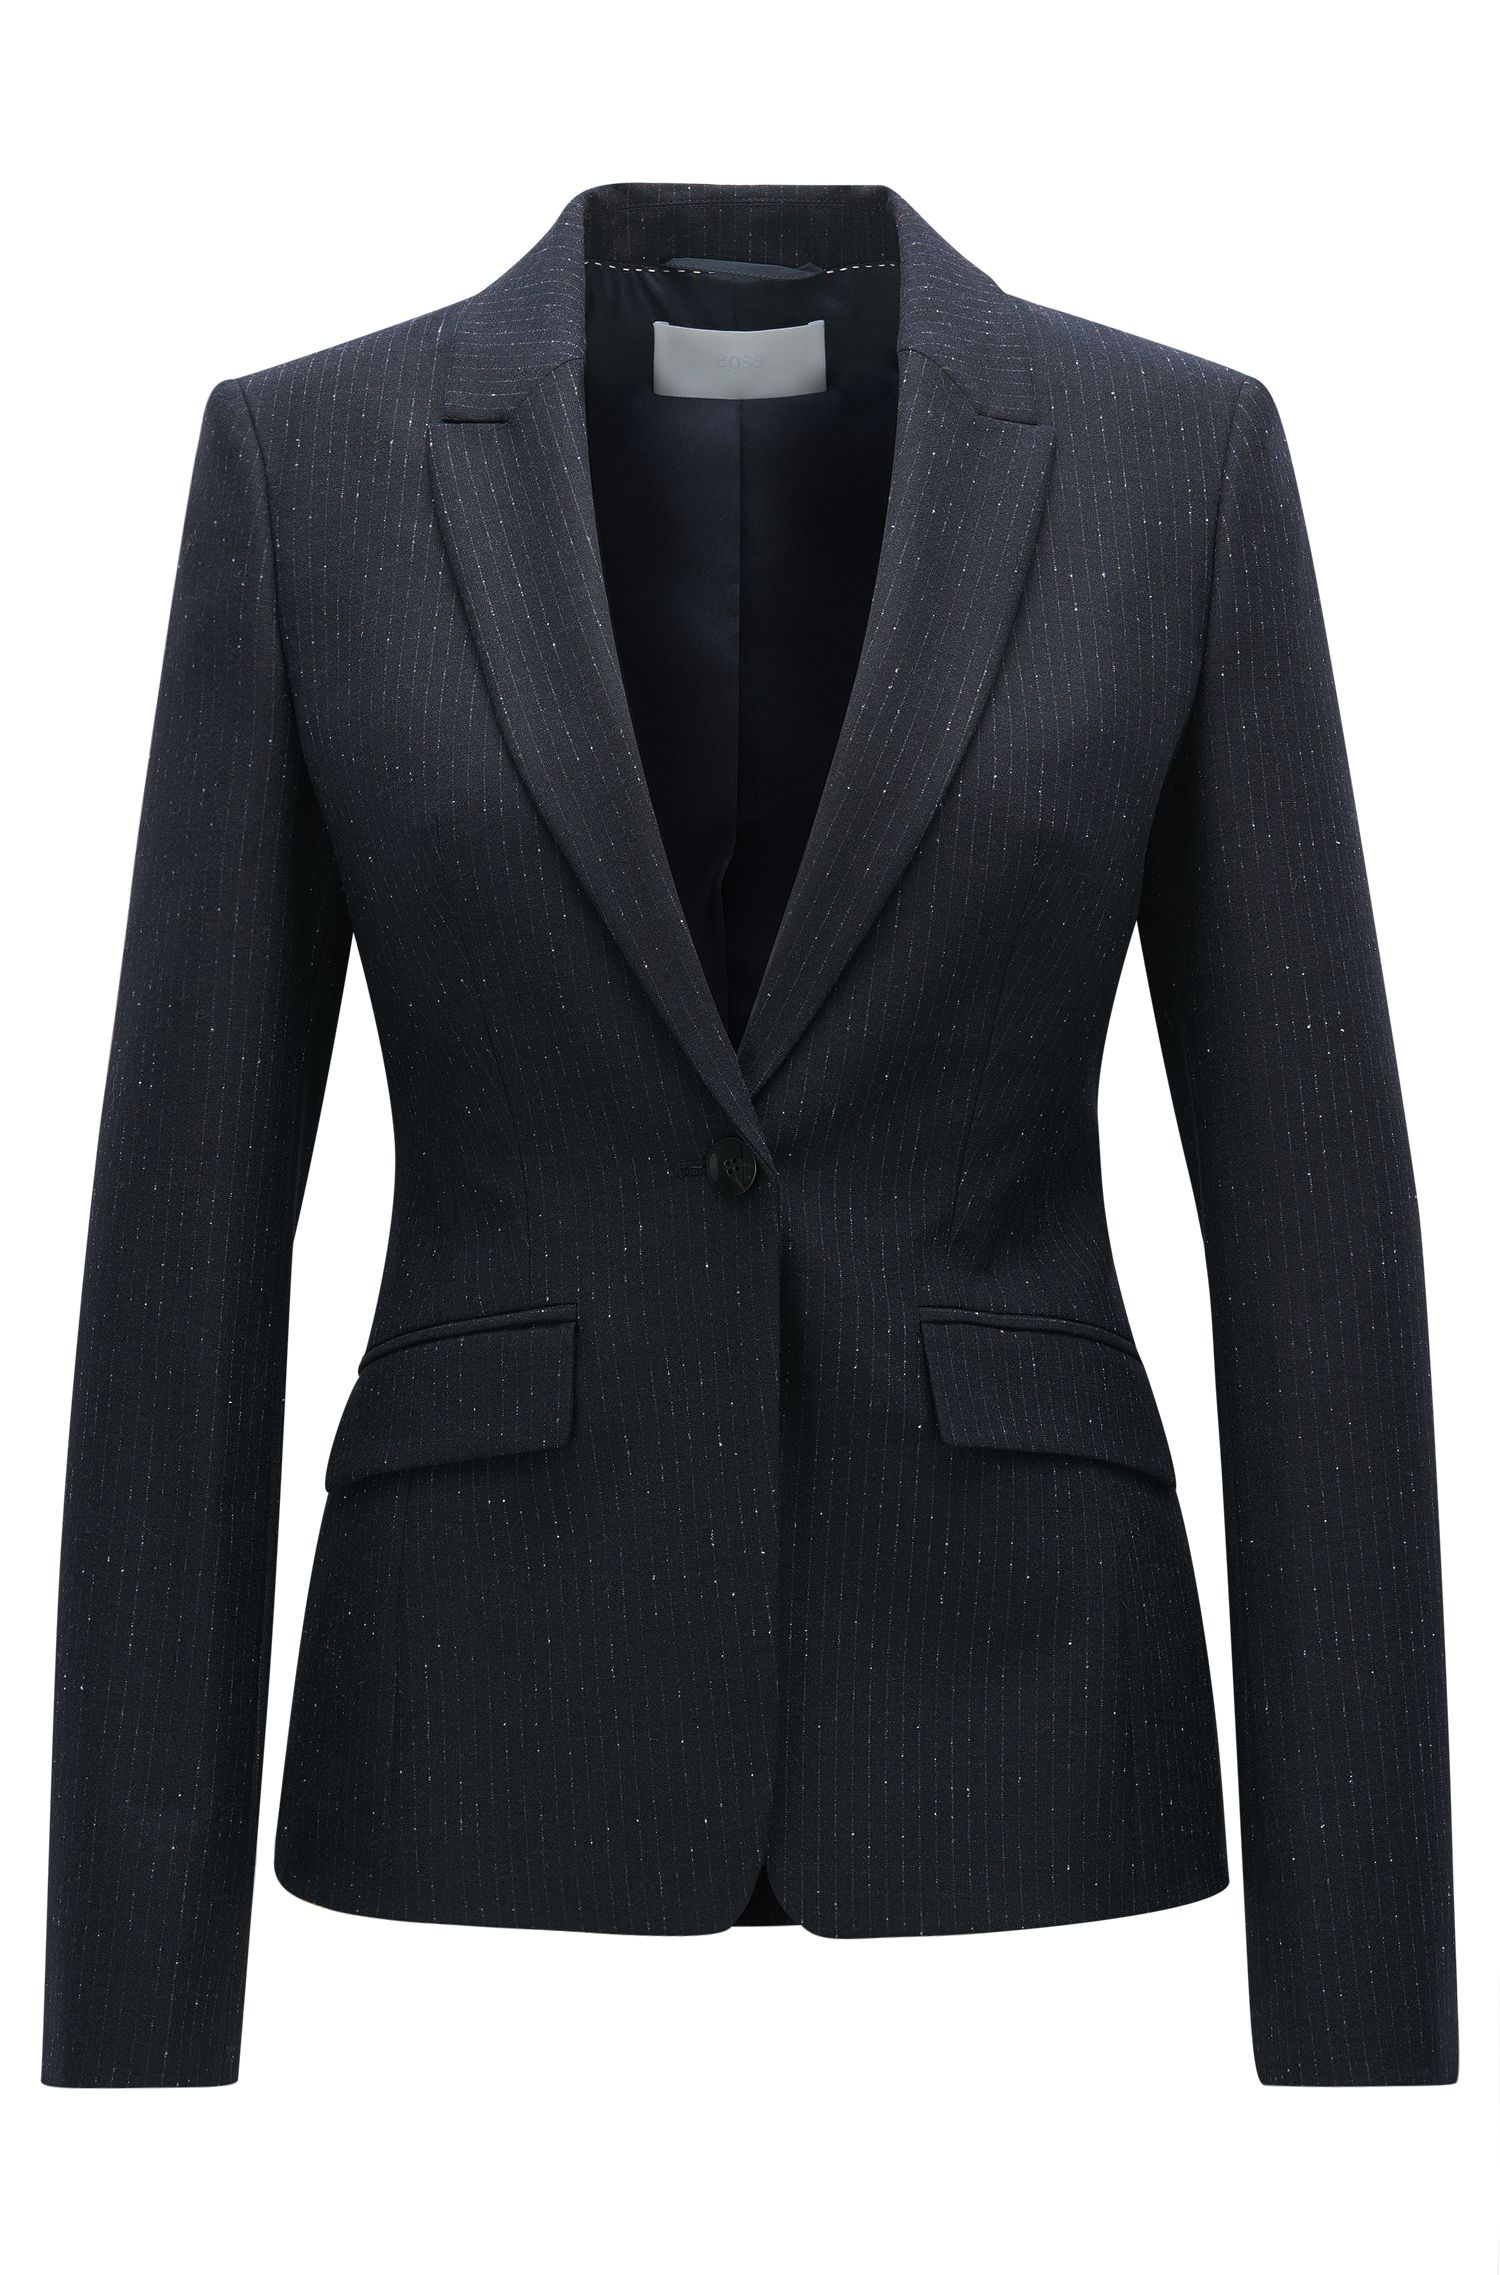 Regular fit virgin wool-blend jacket